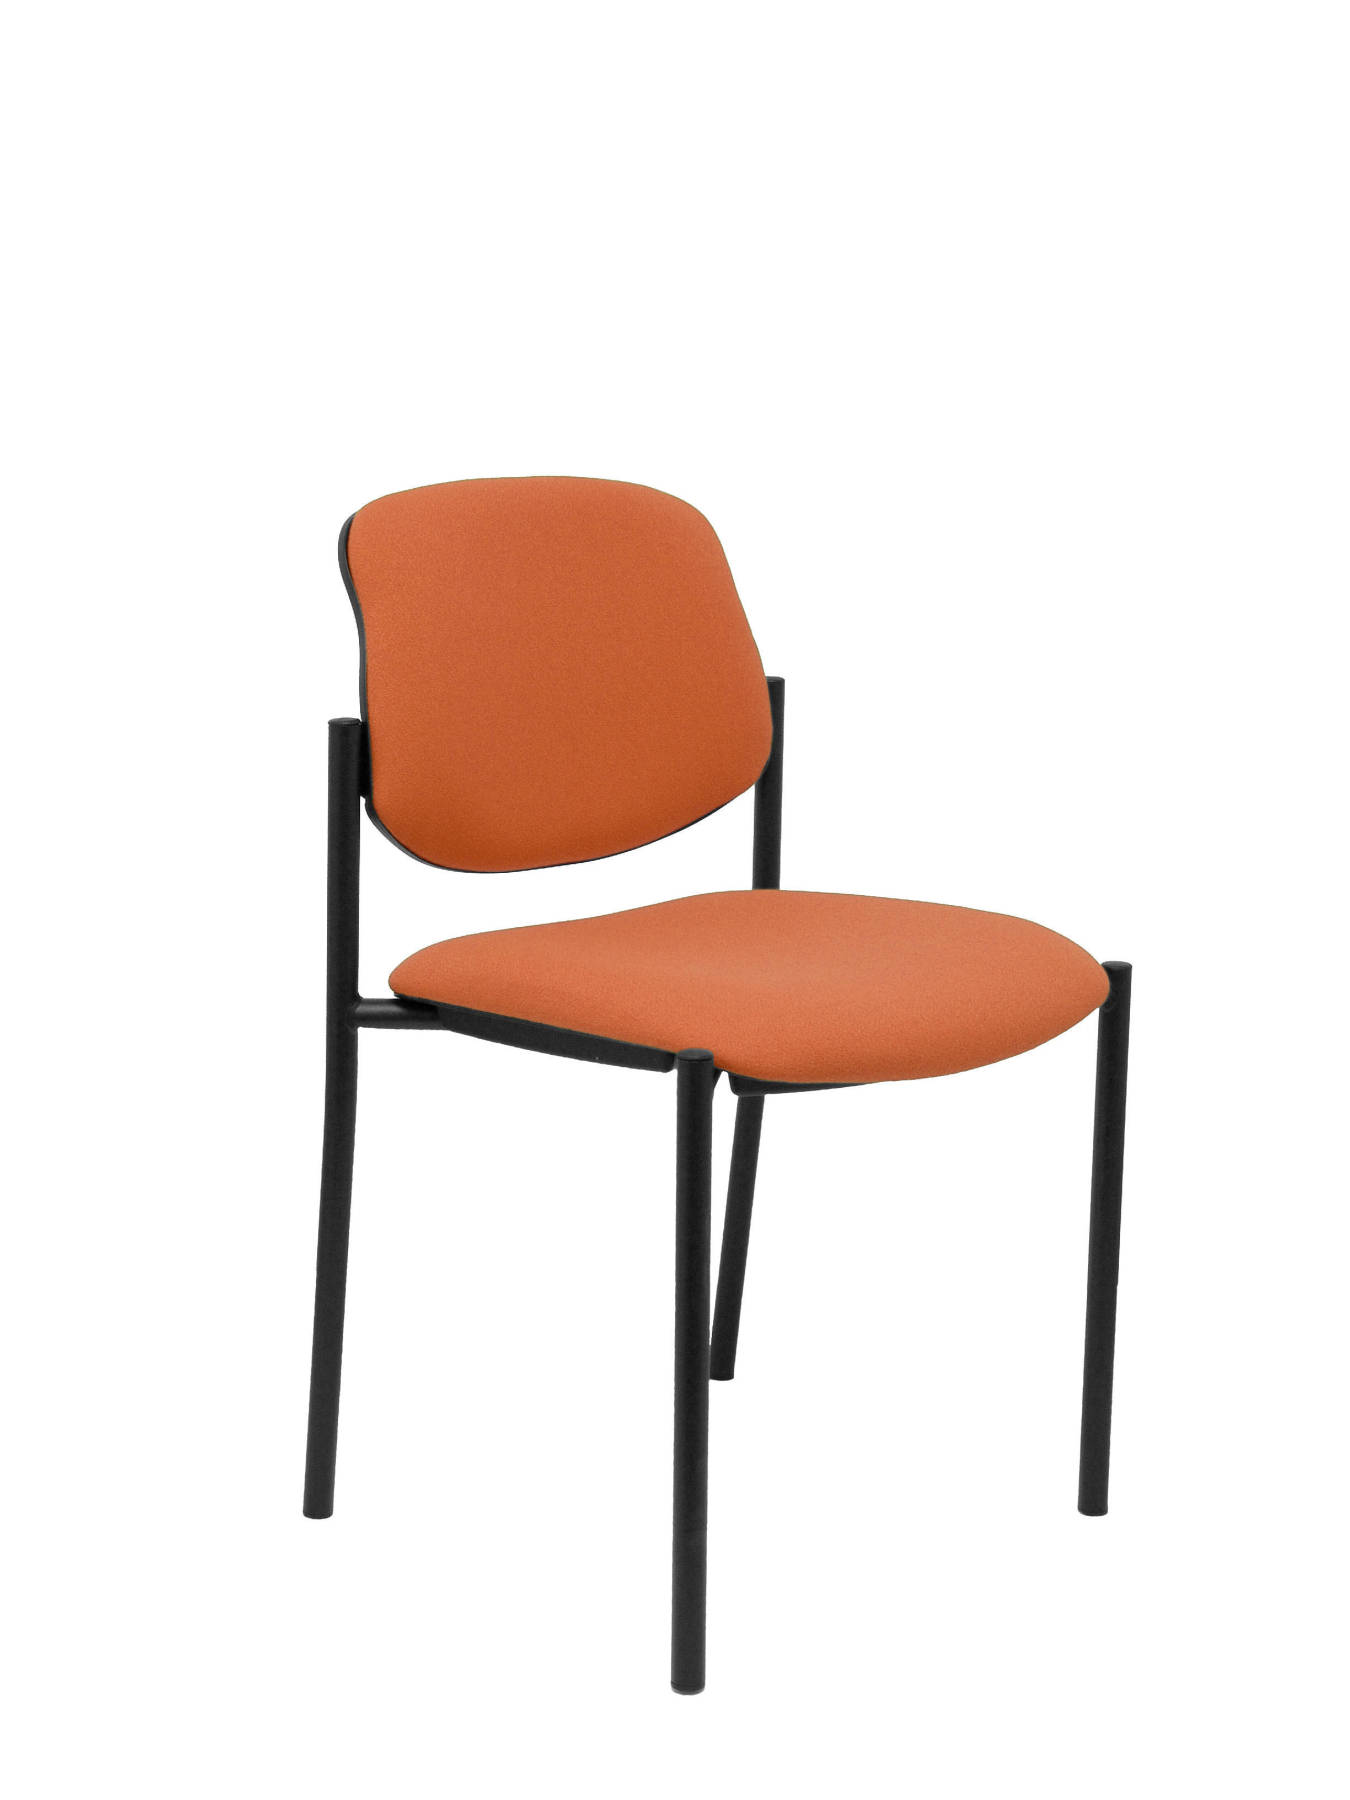 Visitor Chair 4's Topsy And Estructrua Negro-up Seat And Backstop Upholstered In BALI Tissue Color Brown TAPHOLE AND CR